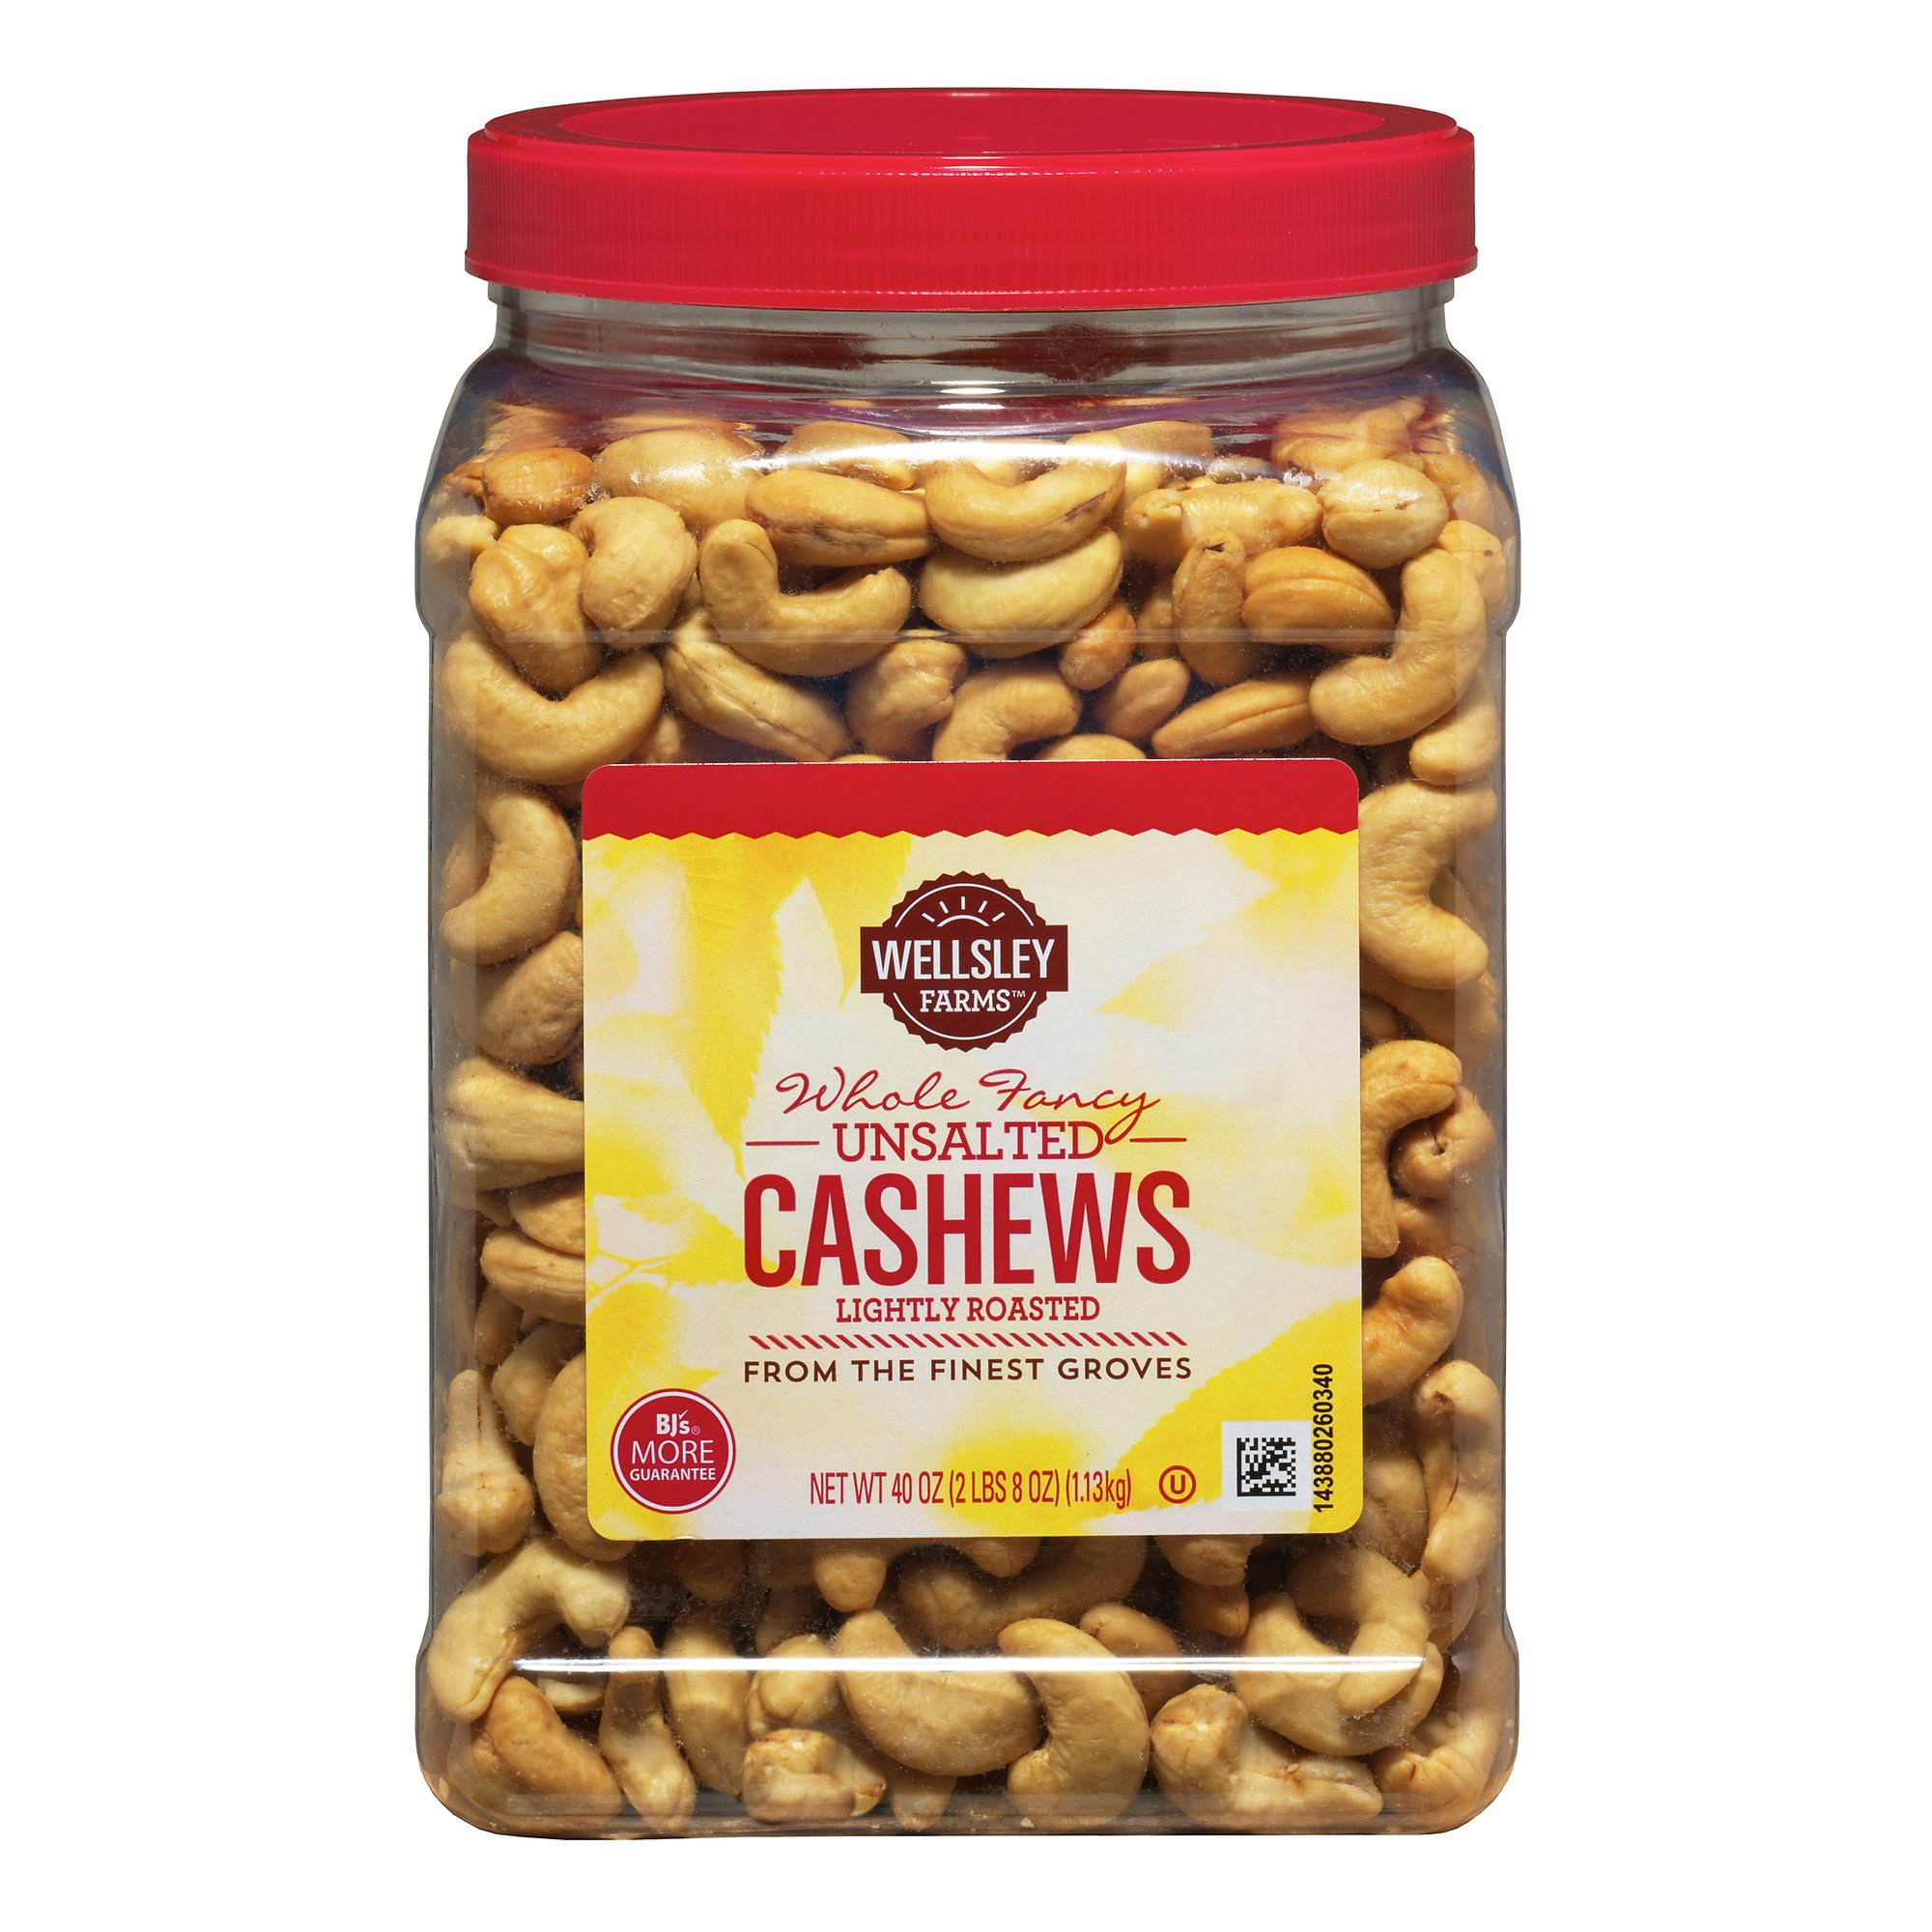 Wellsley Farms Unsalted Roasted Whole Cashews, 2.5 lbs. (pack of 6)